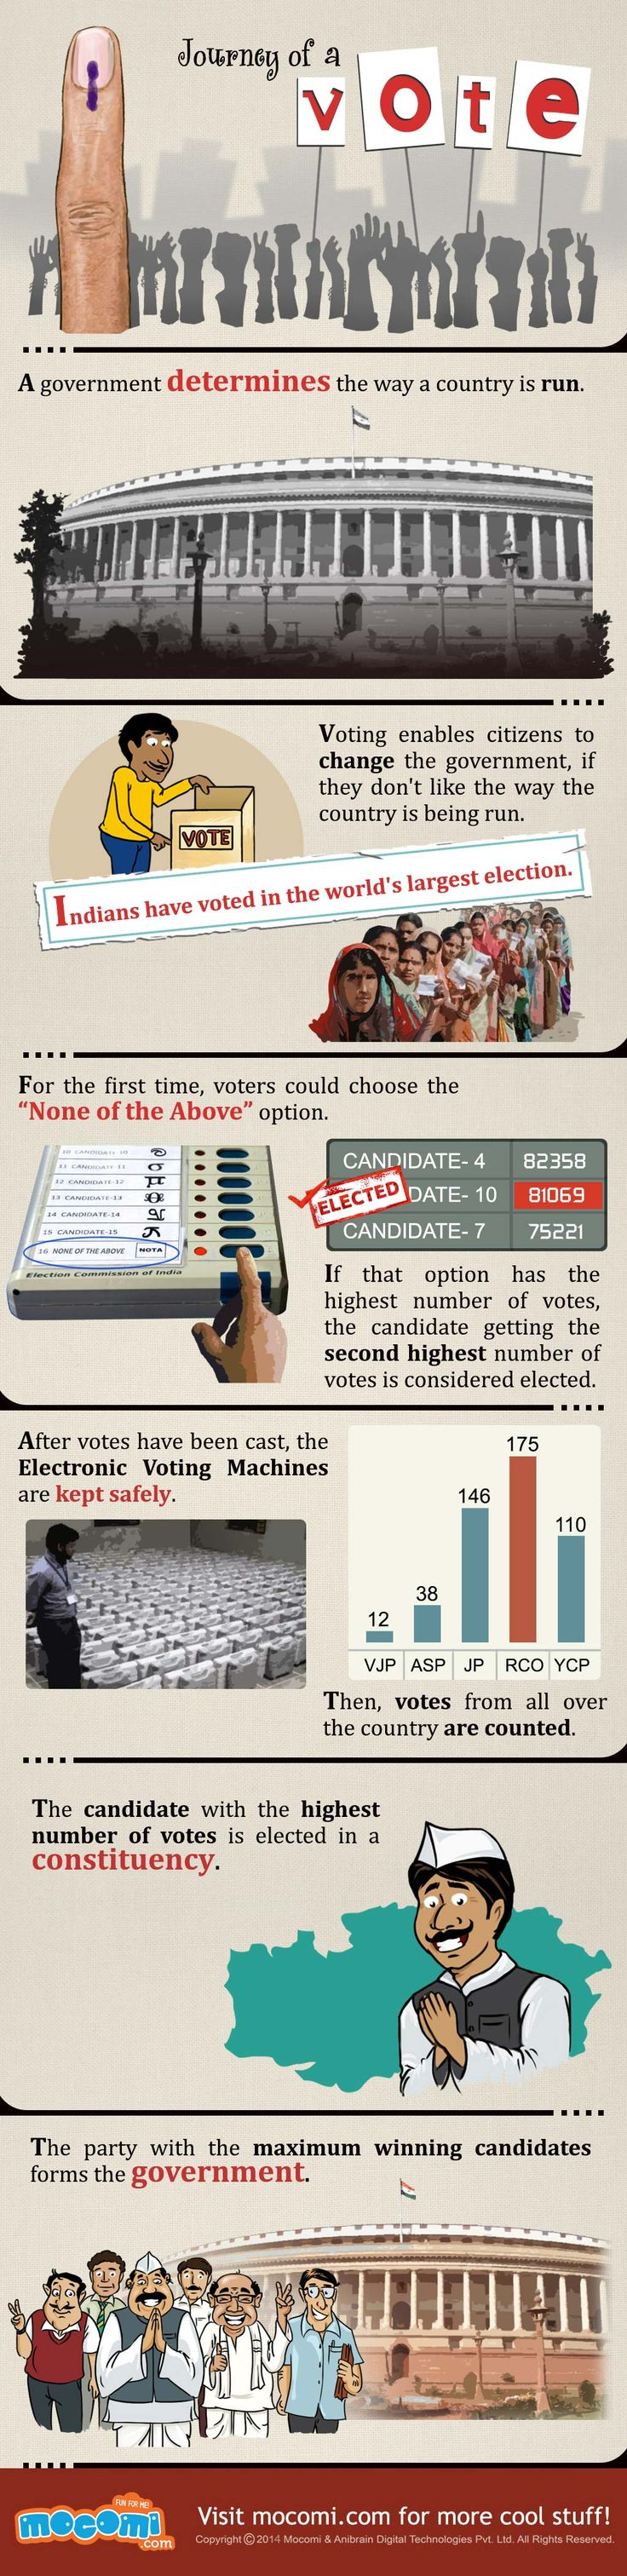 Journey of a Vote - Voting enables citizens to elect a new government. India is world's largest democracy. Do you know what is democracy? http://mocomi.com/what-is-democracy/